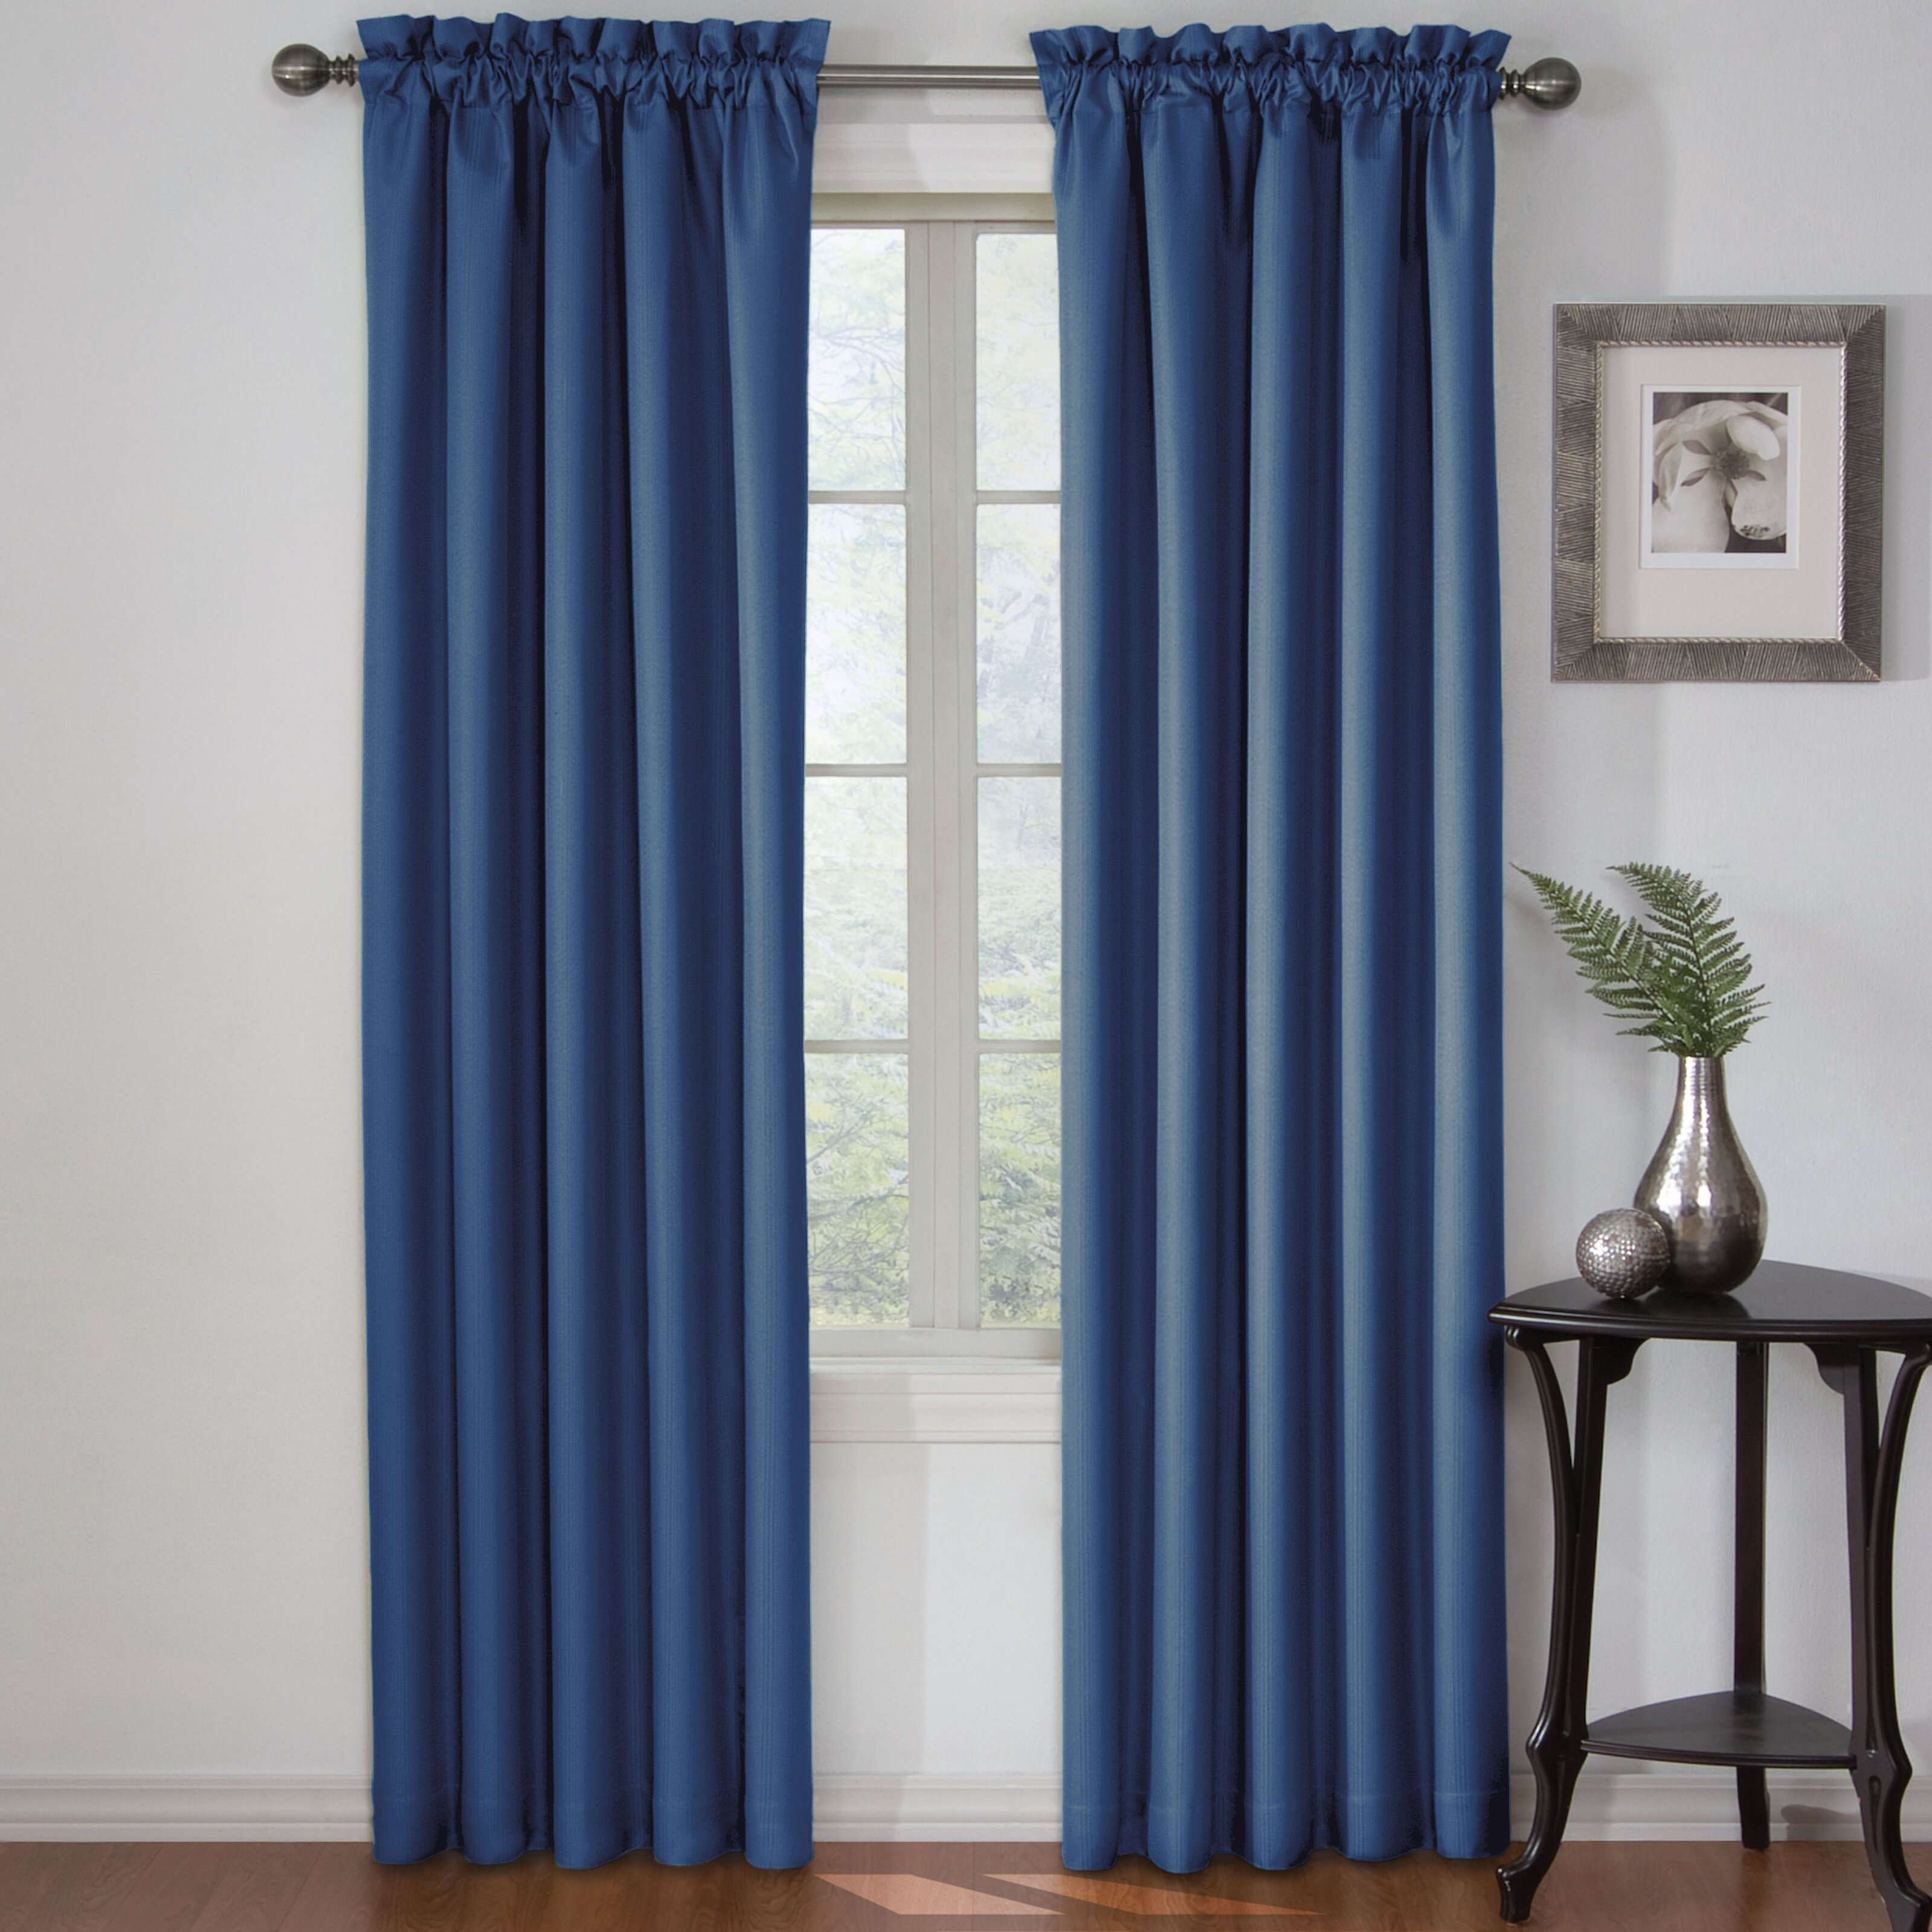 Yellow Blackout Curtains Nursery 28 Images Blackout Curtains Nursery Uk Home Design Ideas